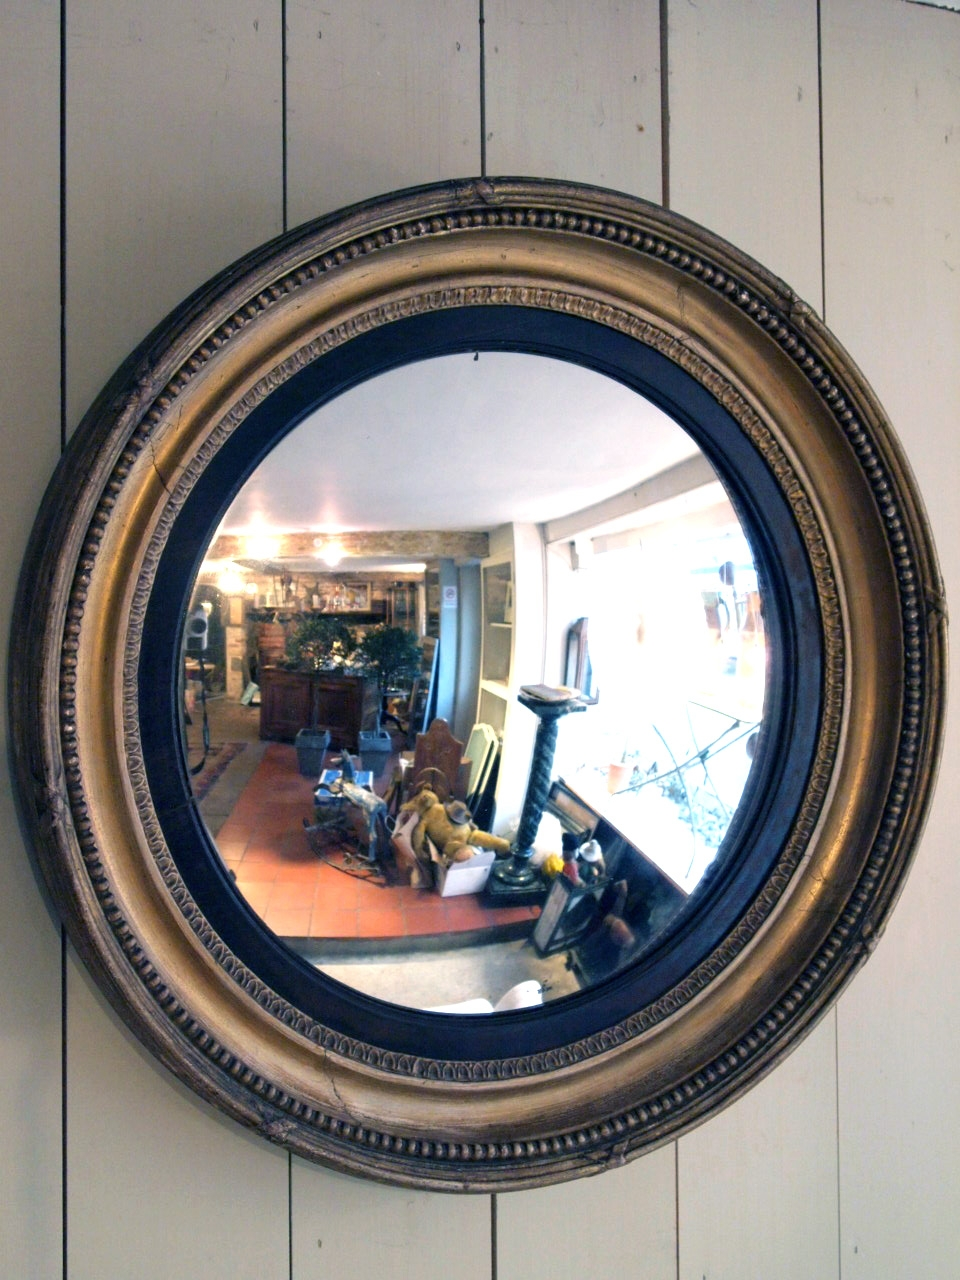 Antique Round Convex Mirror Puckhaber Decorative Antiques Pertaining To Round Convex Mirrors (Image 4 of 15)